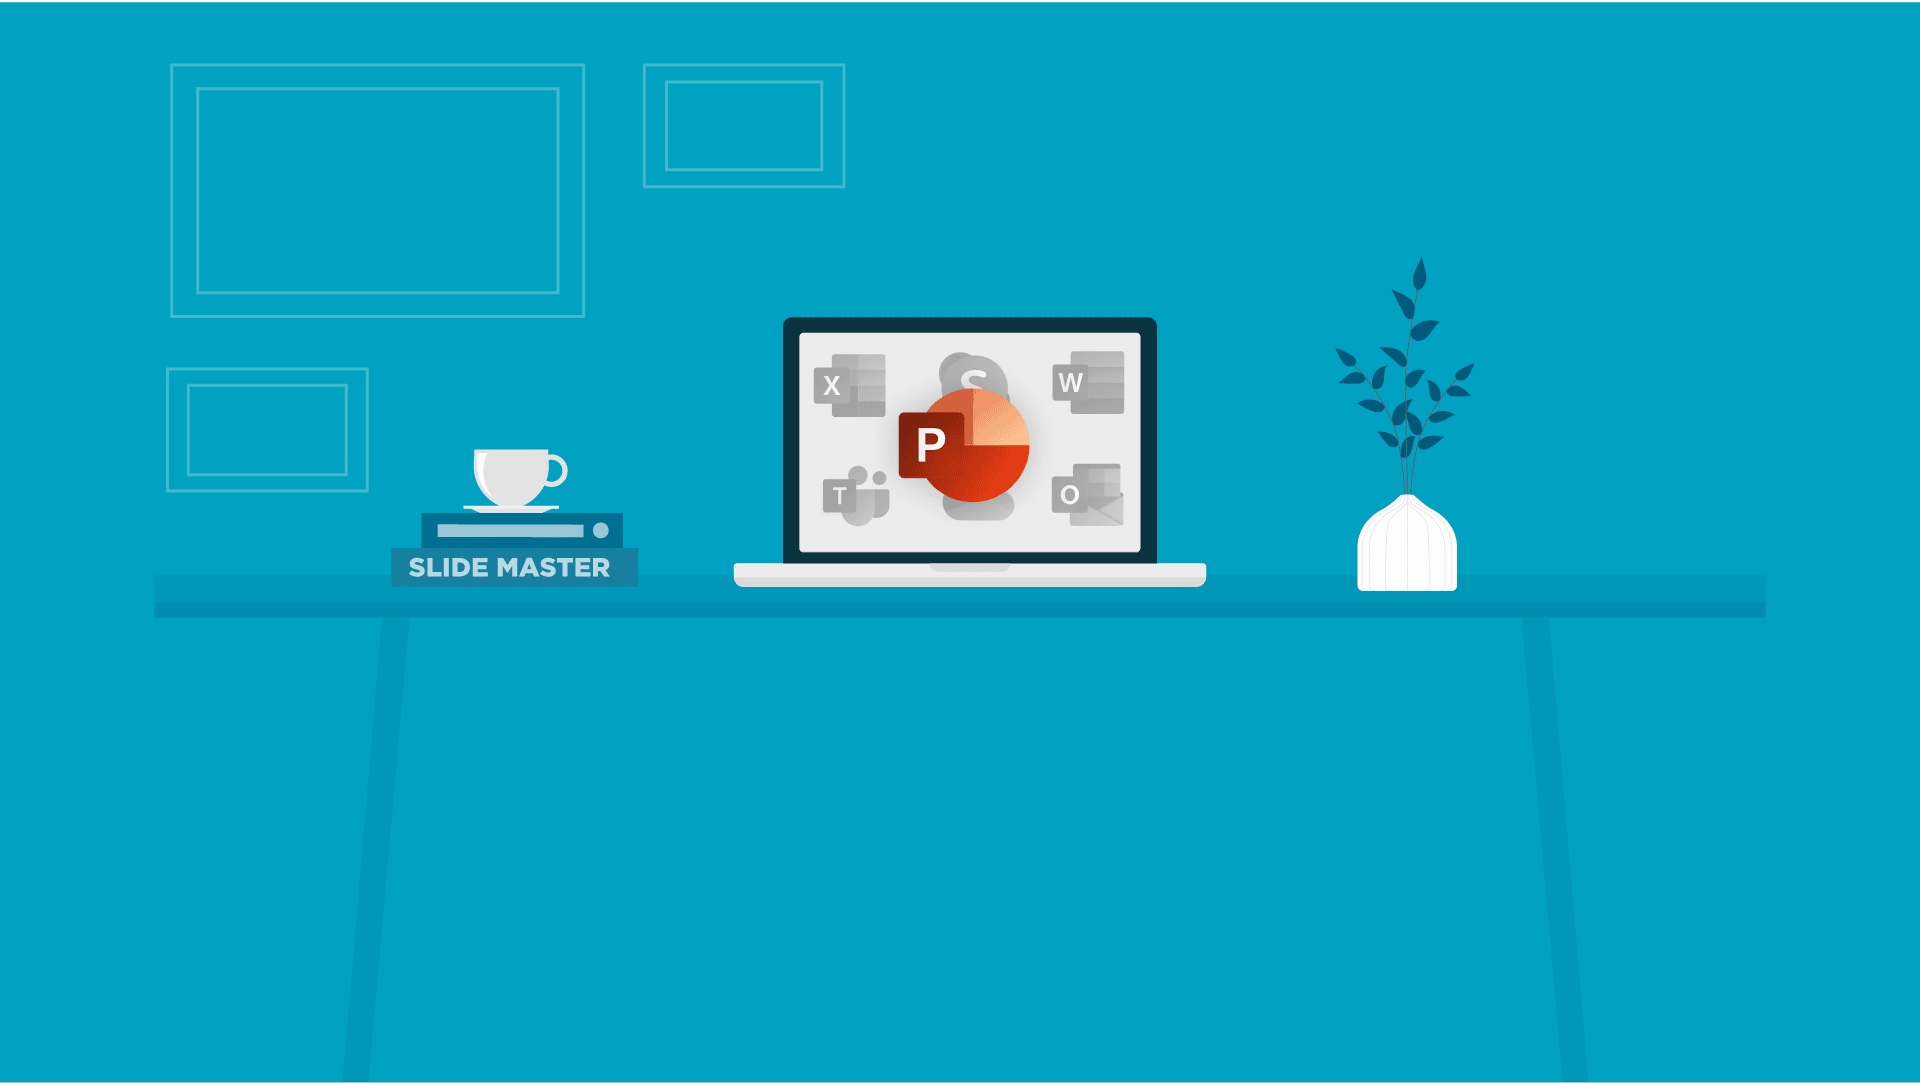 PowerPoint: The reason to Migrate to Office 365 Webinar